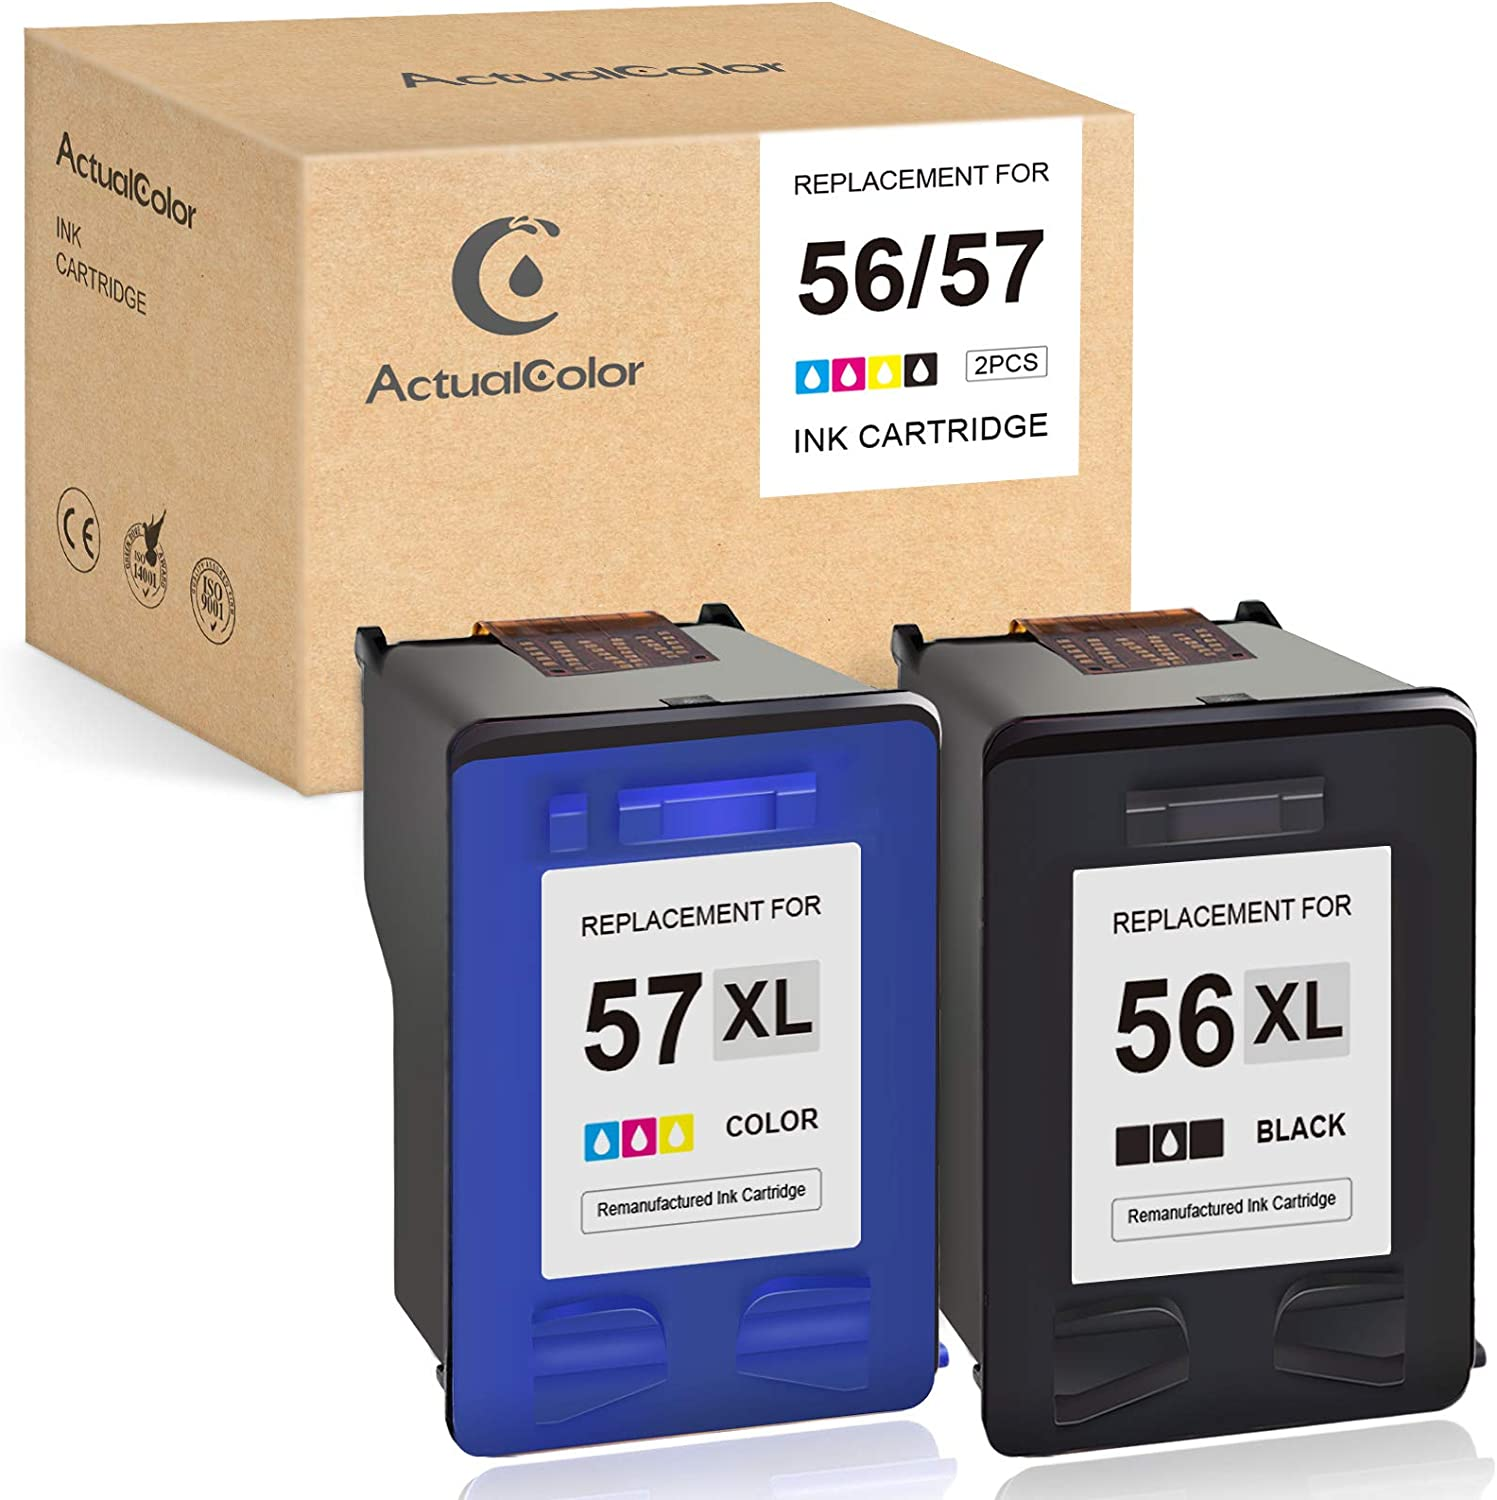 ActualColor C Remanufactured Ink Cartridge Replacement for HP 56 57 C6656AN C6657AN for Deskjet 5550 5650 5850 Officejet 4215 Photosmart 7260 7350 7450 7550 7760 7660 7960 PSC 2210 2410 1210 (2-Pack)